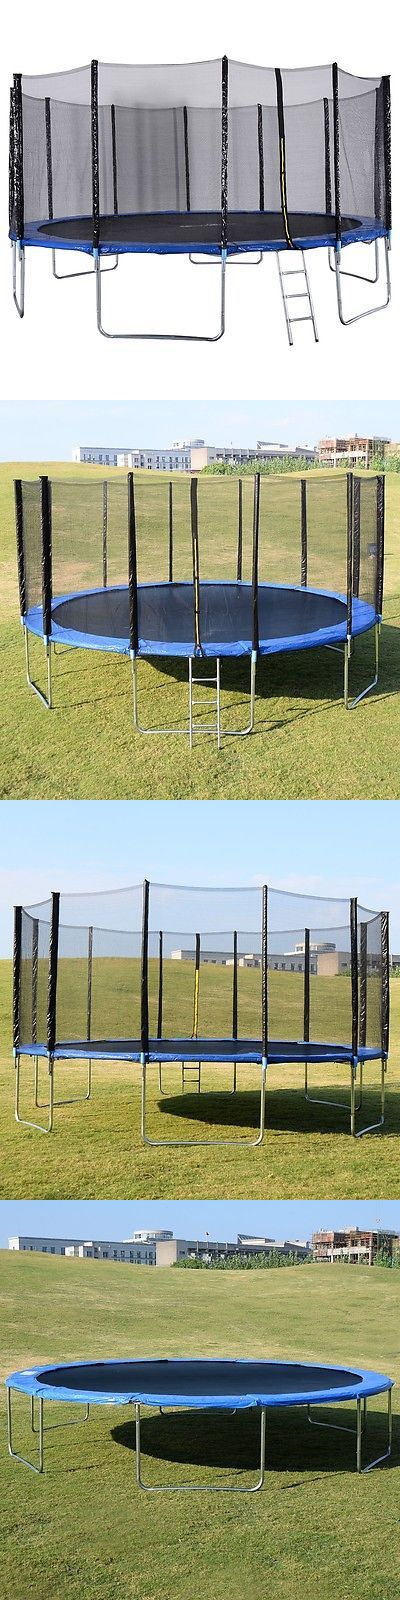 Trampolines 57275: Safety Trampoline 16Ft Combo Bounce Jump Enclosure Net W/Spring Pad Ladder BUY IT NOW ONLY: $435.83